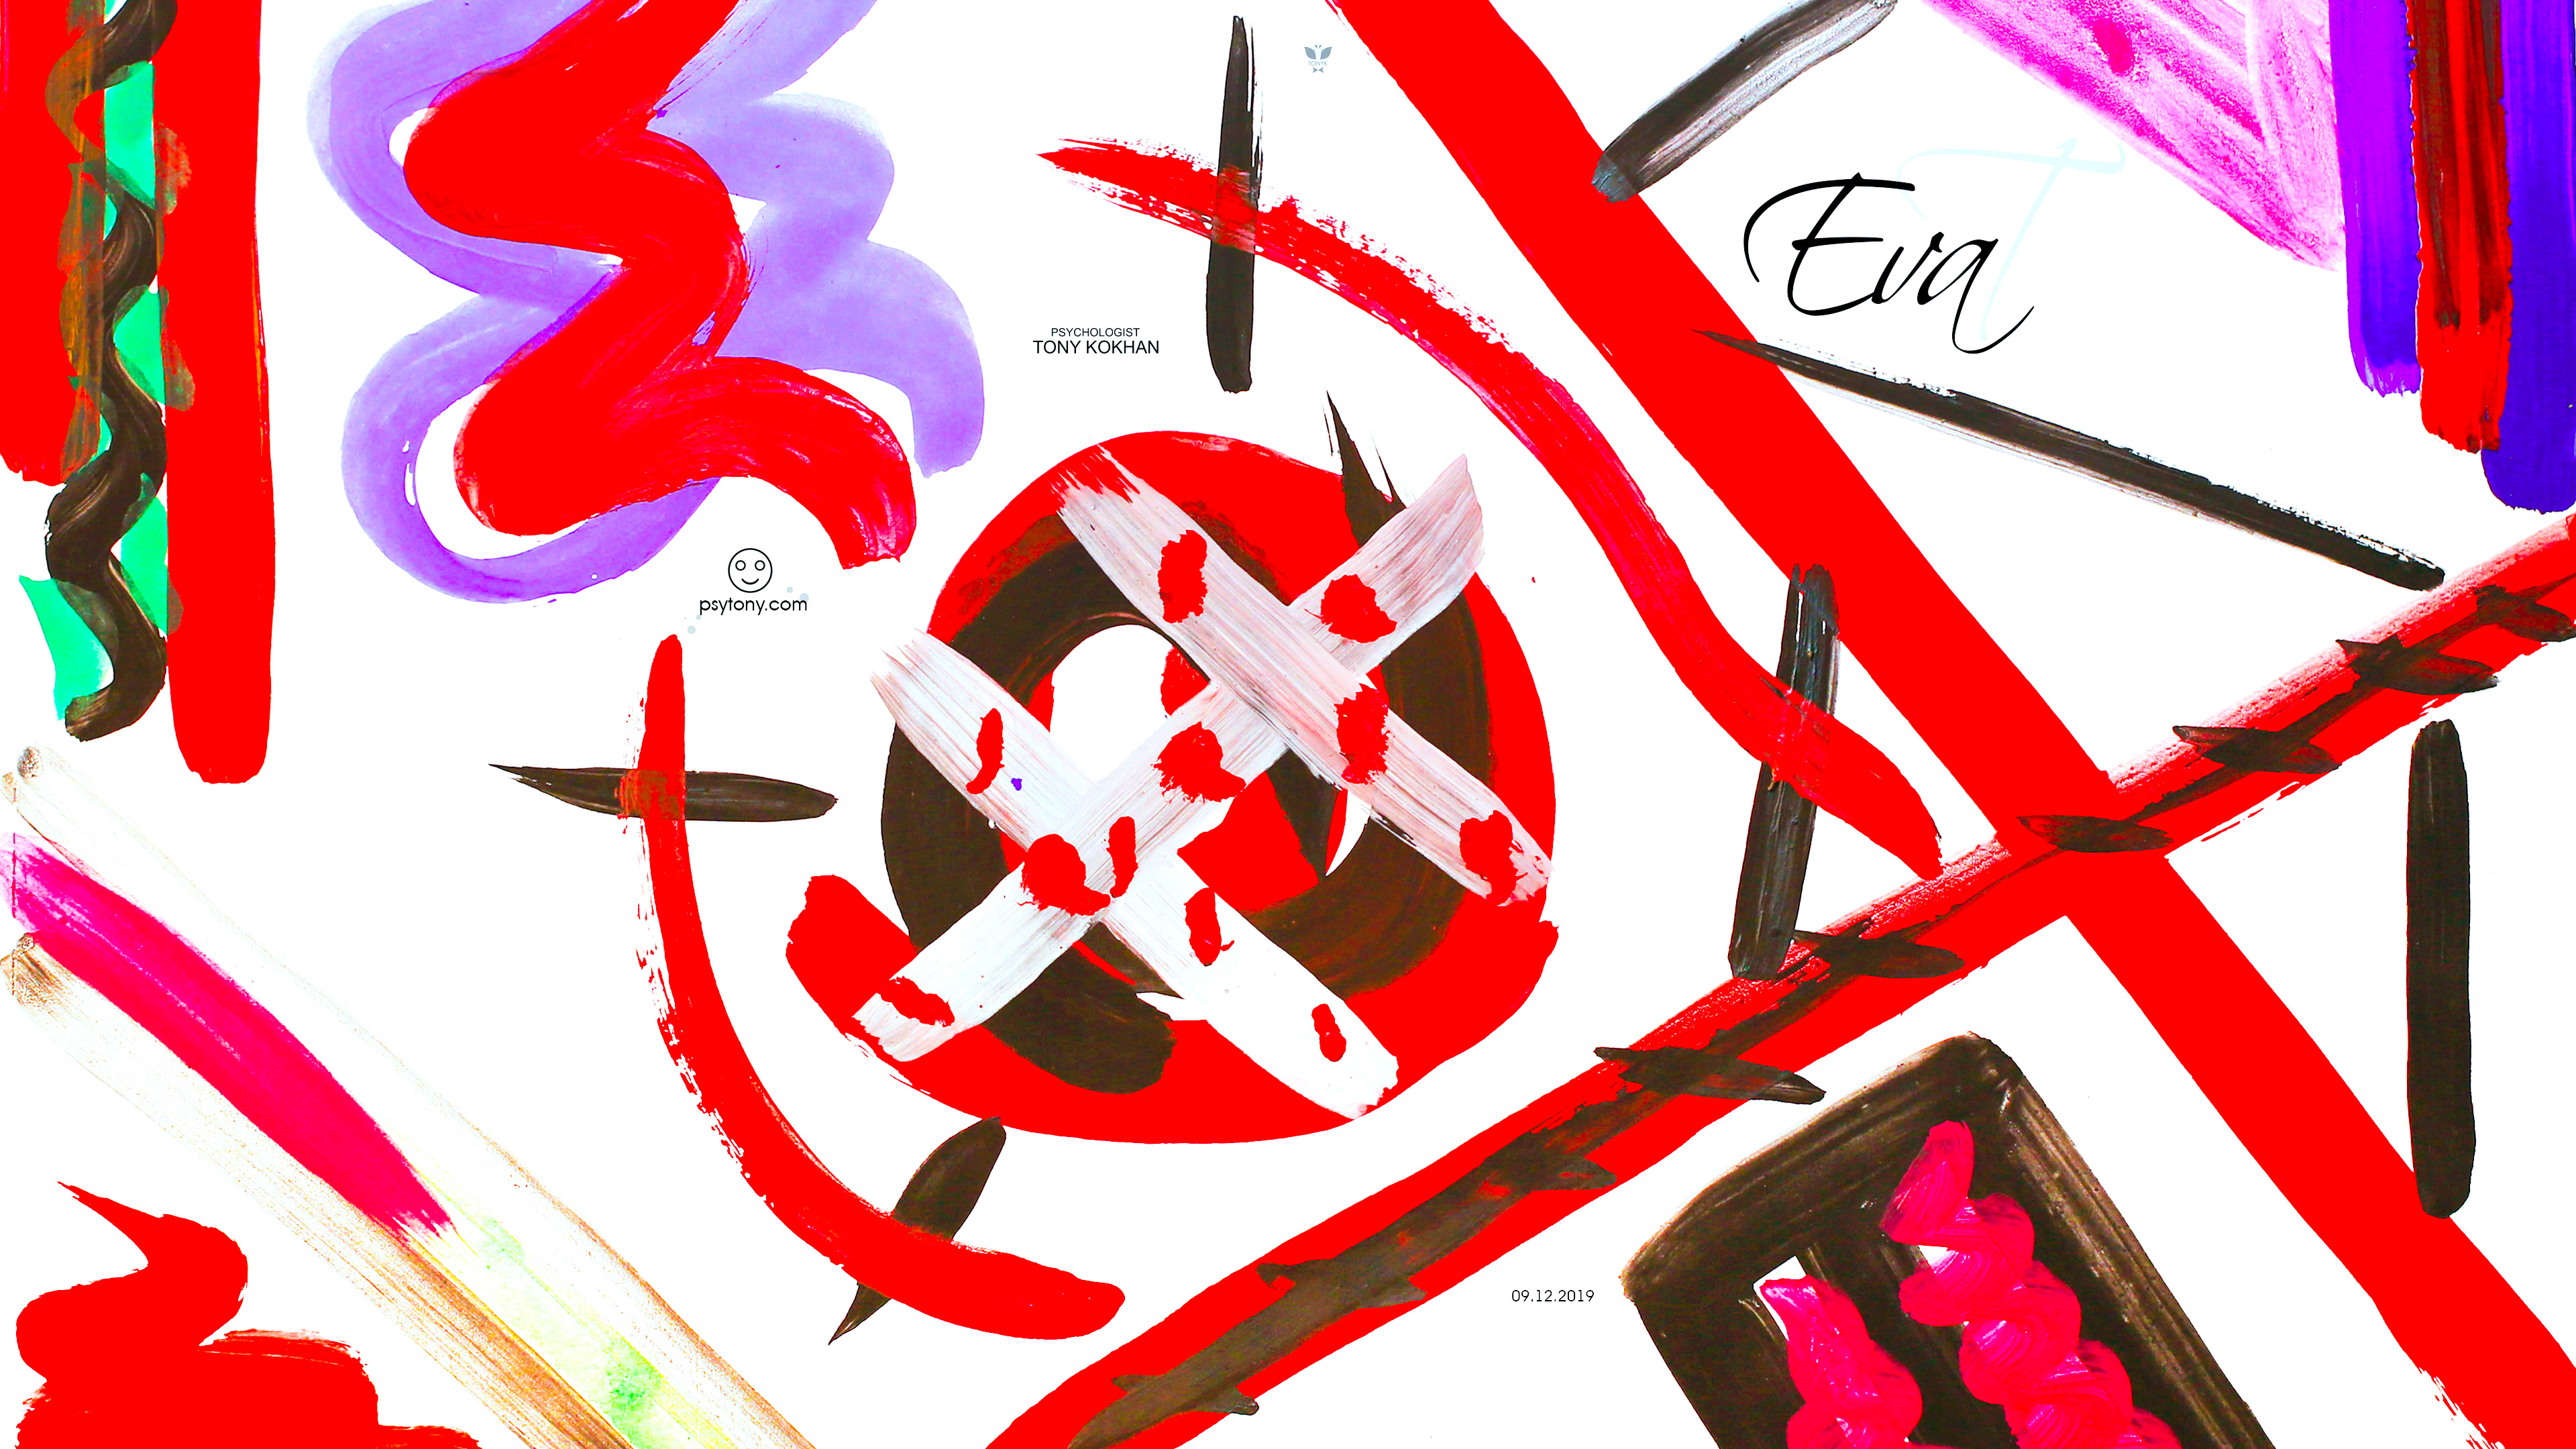 Eva-Soul-Girl-Passion-Blood-Character-Plane-Mother-War-Hitler-Prison-Letter-E-Abstract-Emotions-Picture-Gouache-Art-2019-Multicolors-4K-Wallpapers-by-Psychologist-Tony-Kokhan-www.psytony.com-image